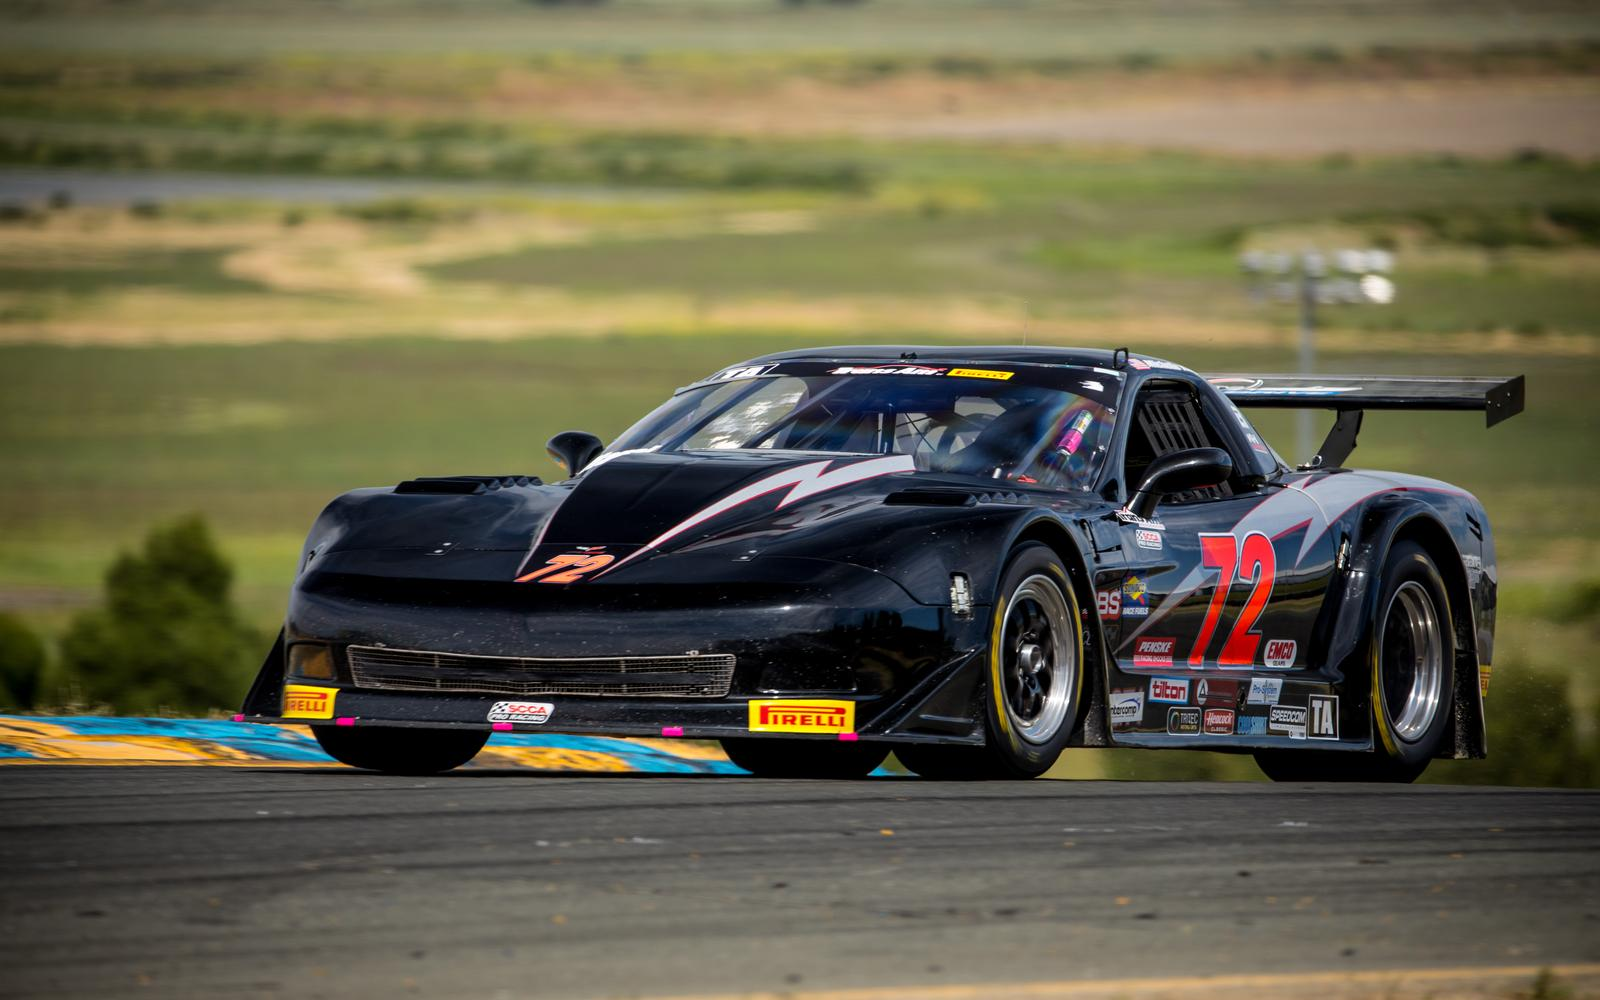 SPLIT SECONDS MAKE A DIFFERENCE IN WILD SONOMA TRANS AM WEST COAST QUALIFYING